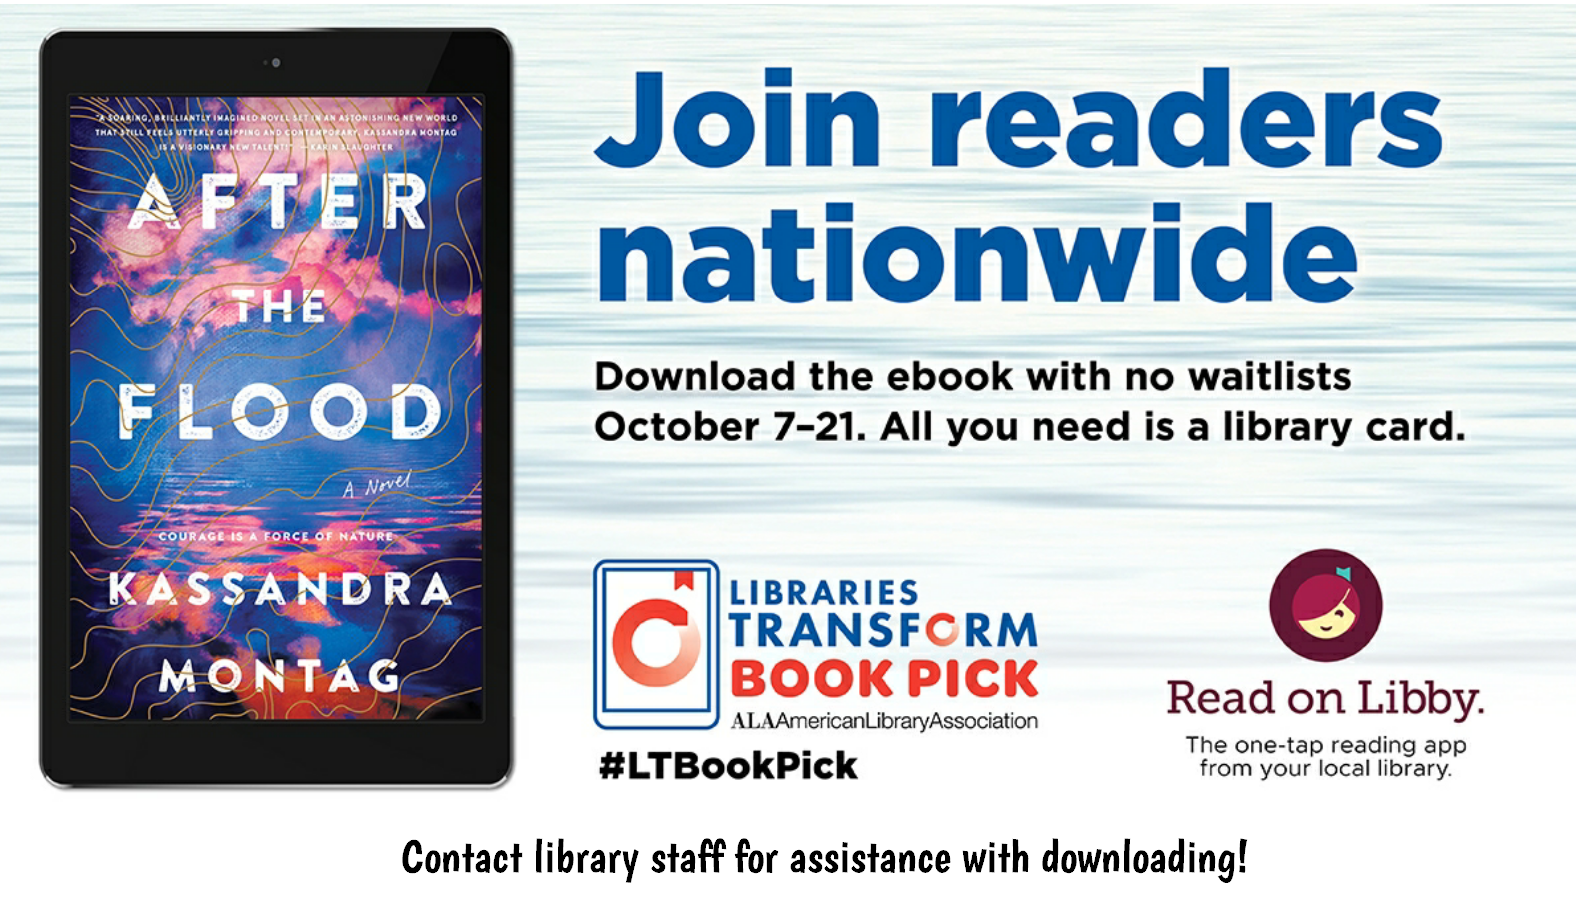 Libraries Transform Book Pick: After The Flood